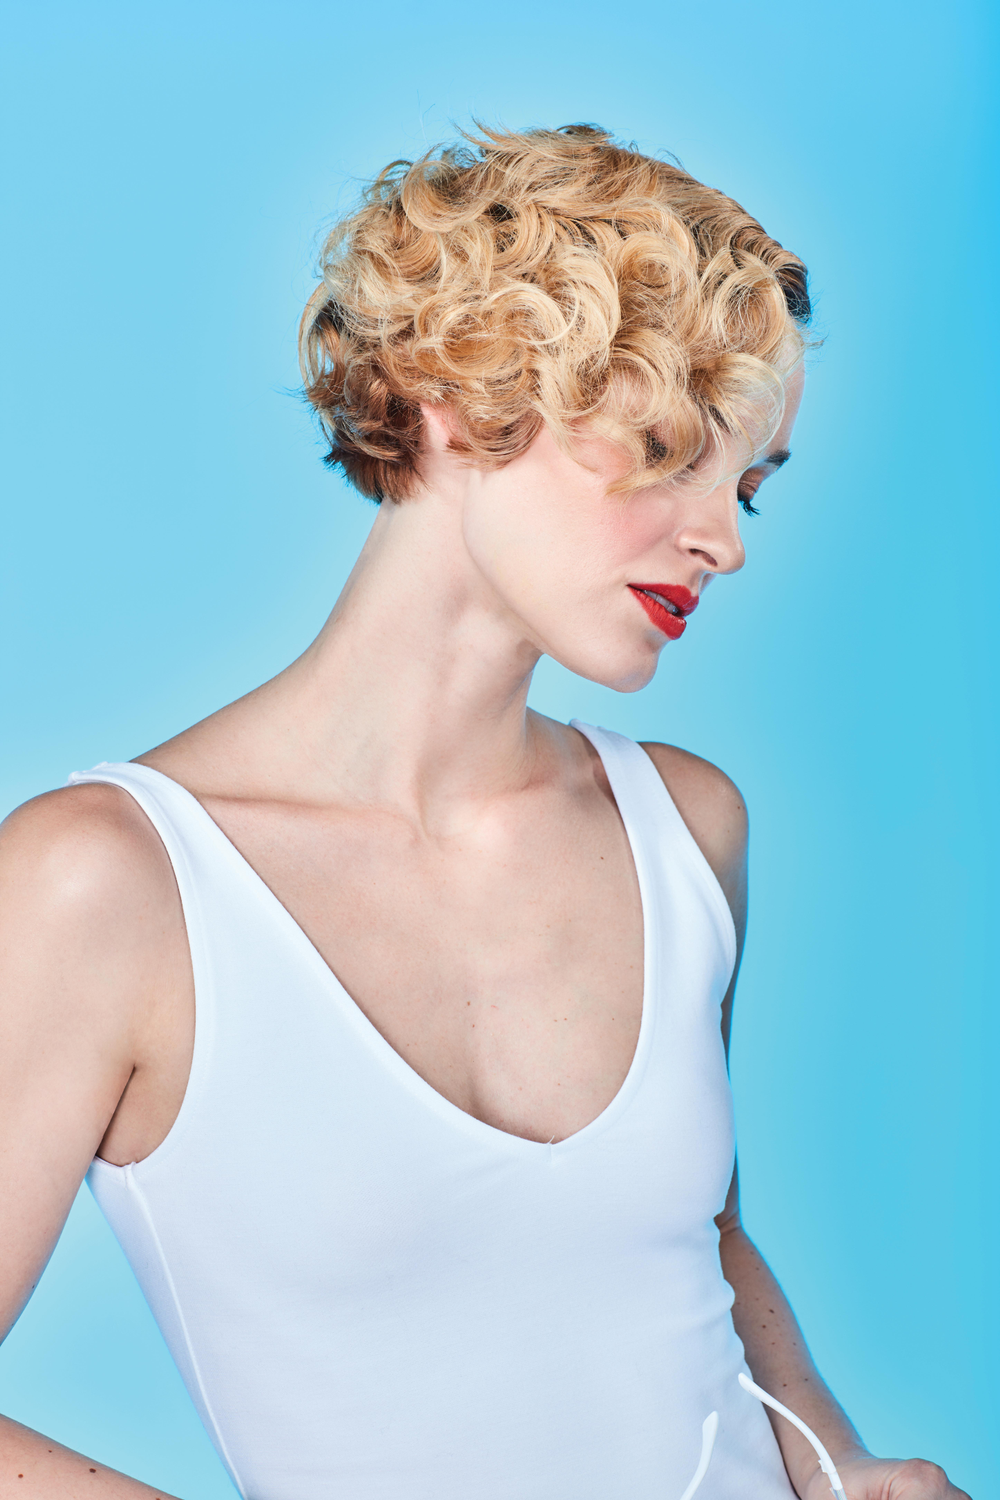 "<p>This classic arching bob has very slight graduation on top layers of hair. ""We reinvented this classic shape through styling to give a 30s-40s inspired look,"" Cutler says. ""Using 3/4"" iron, we over-directed hair to create flatness at part line, then brushing out curls.""</p> <p>Key product used: Cibu Texture Addict Dry Wax Spray</p>"